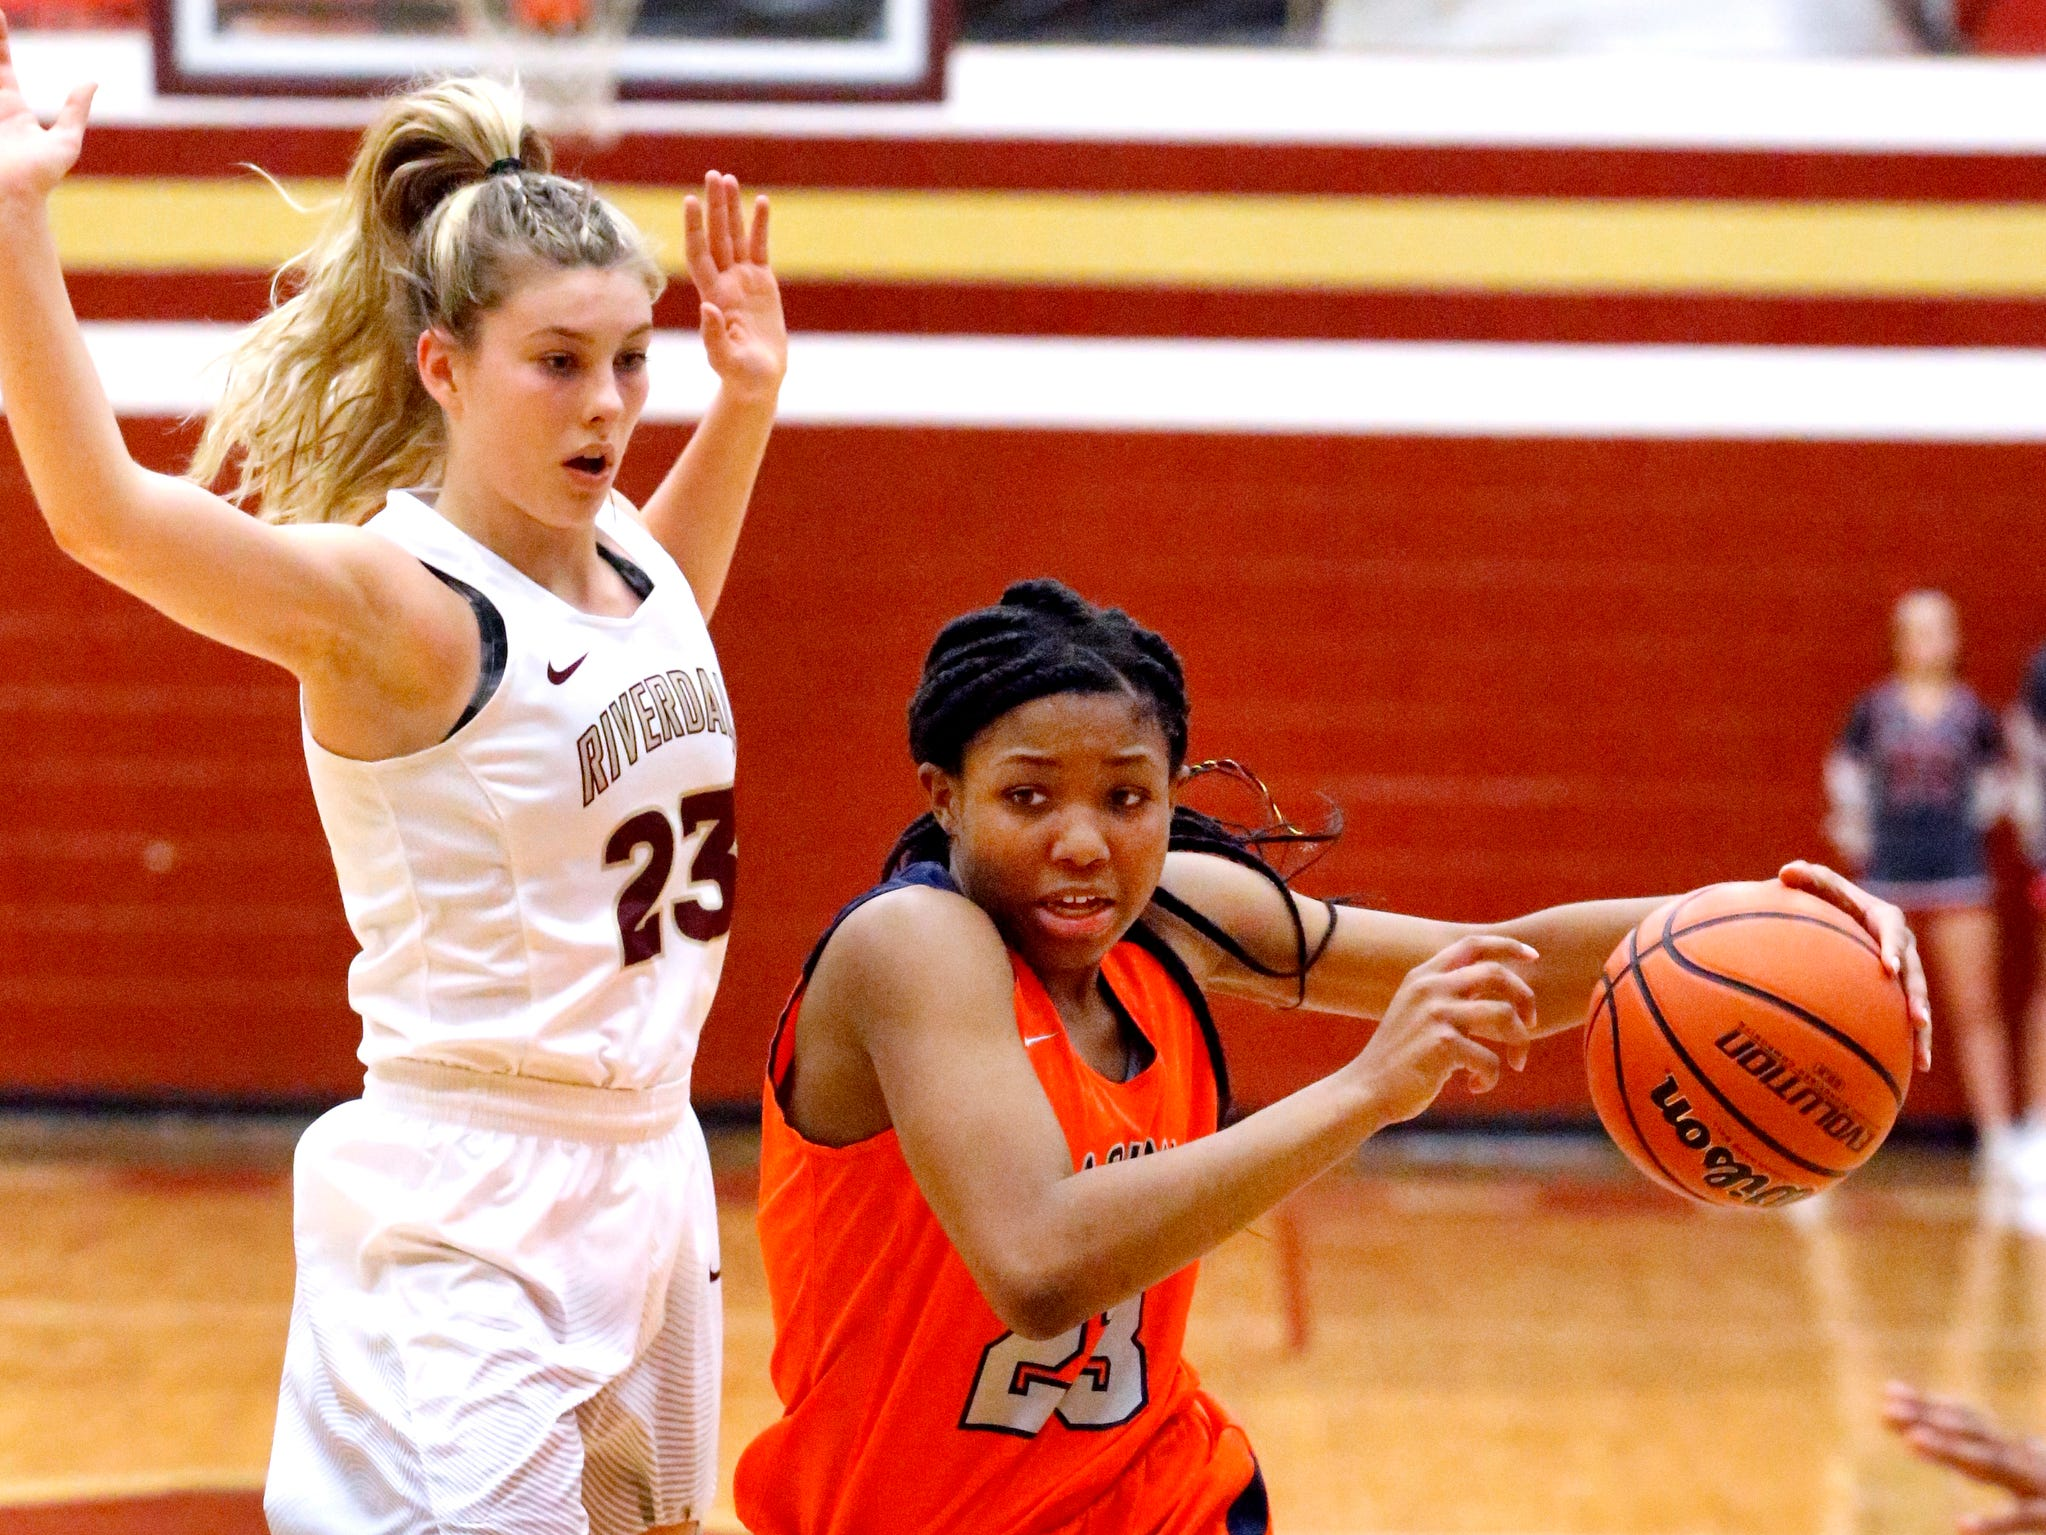 Blackman's Iyana Moore (23) pushes to the basket as Riverdale's Jalyn Hollcomb (23) guards her on Tuesday Jan. 8, 2019.